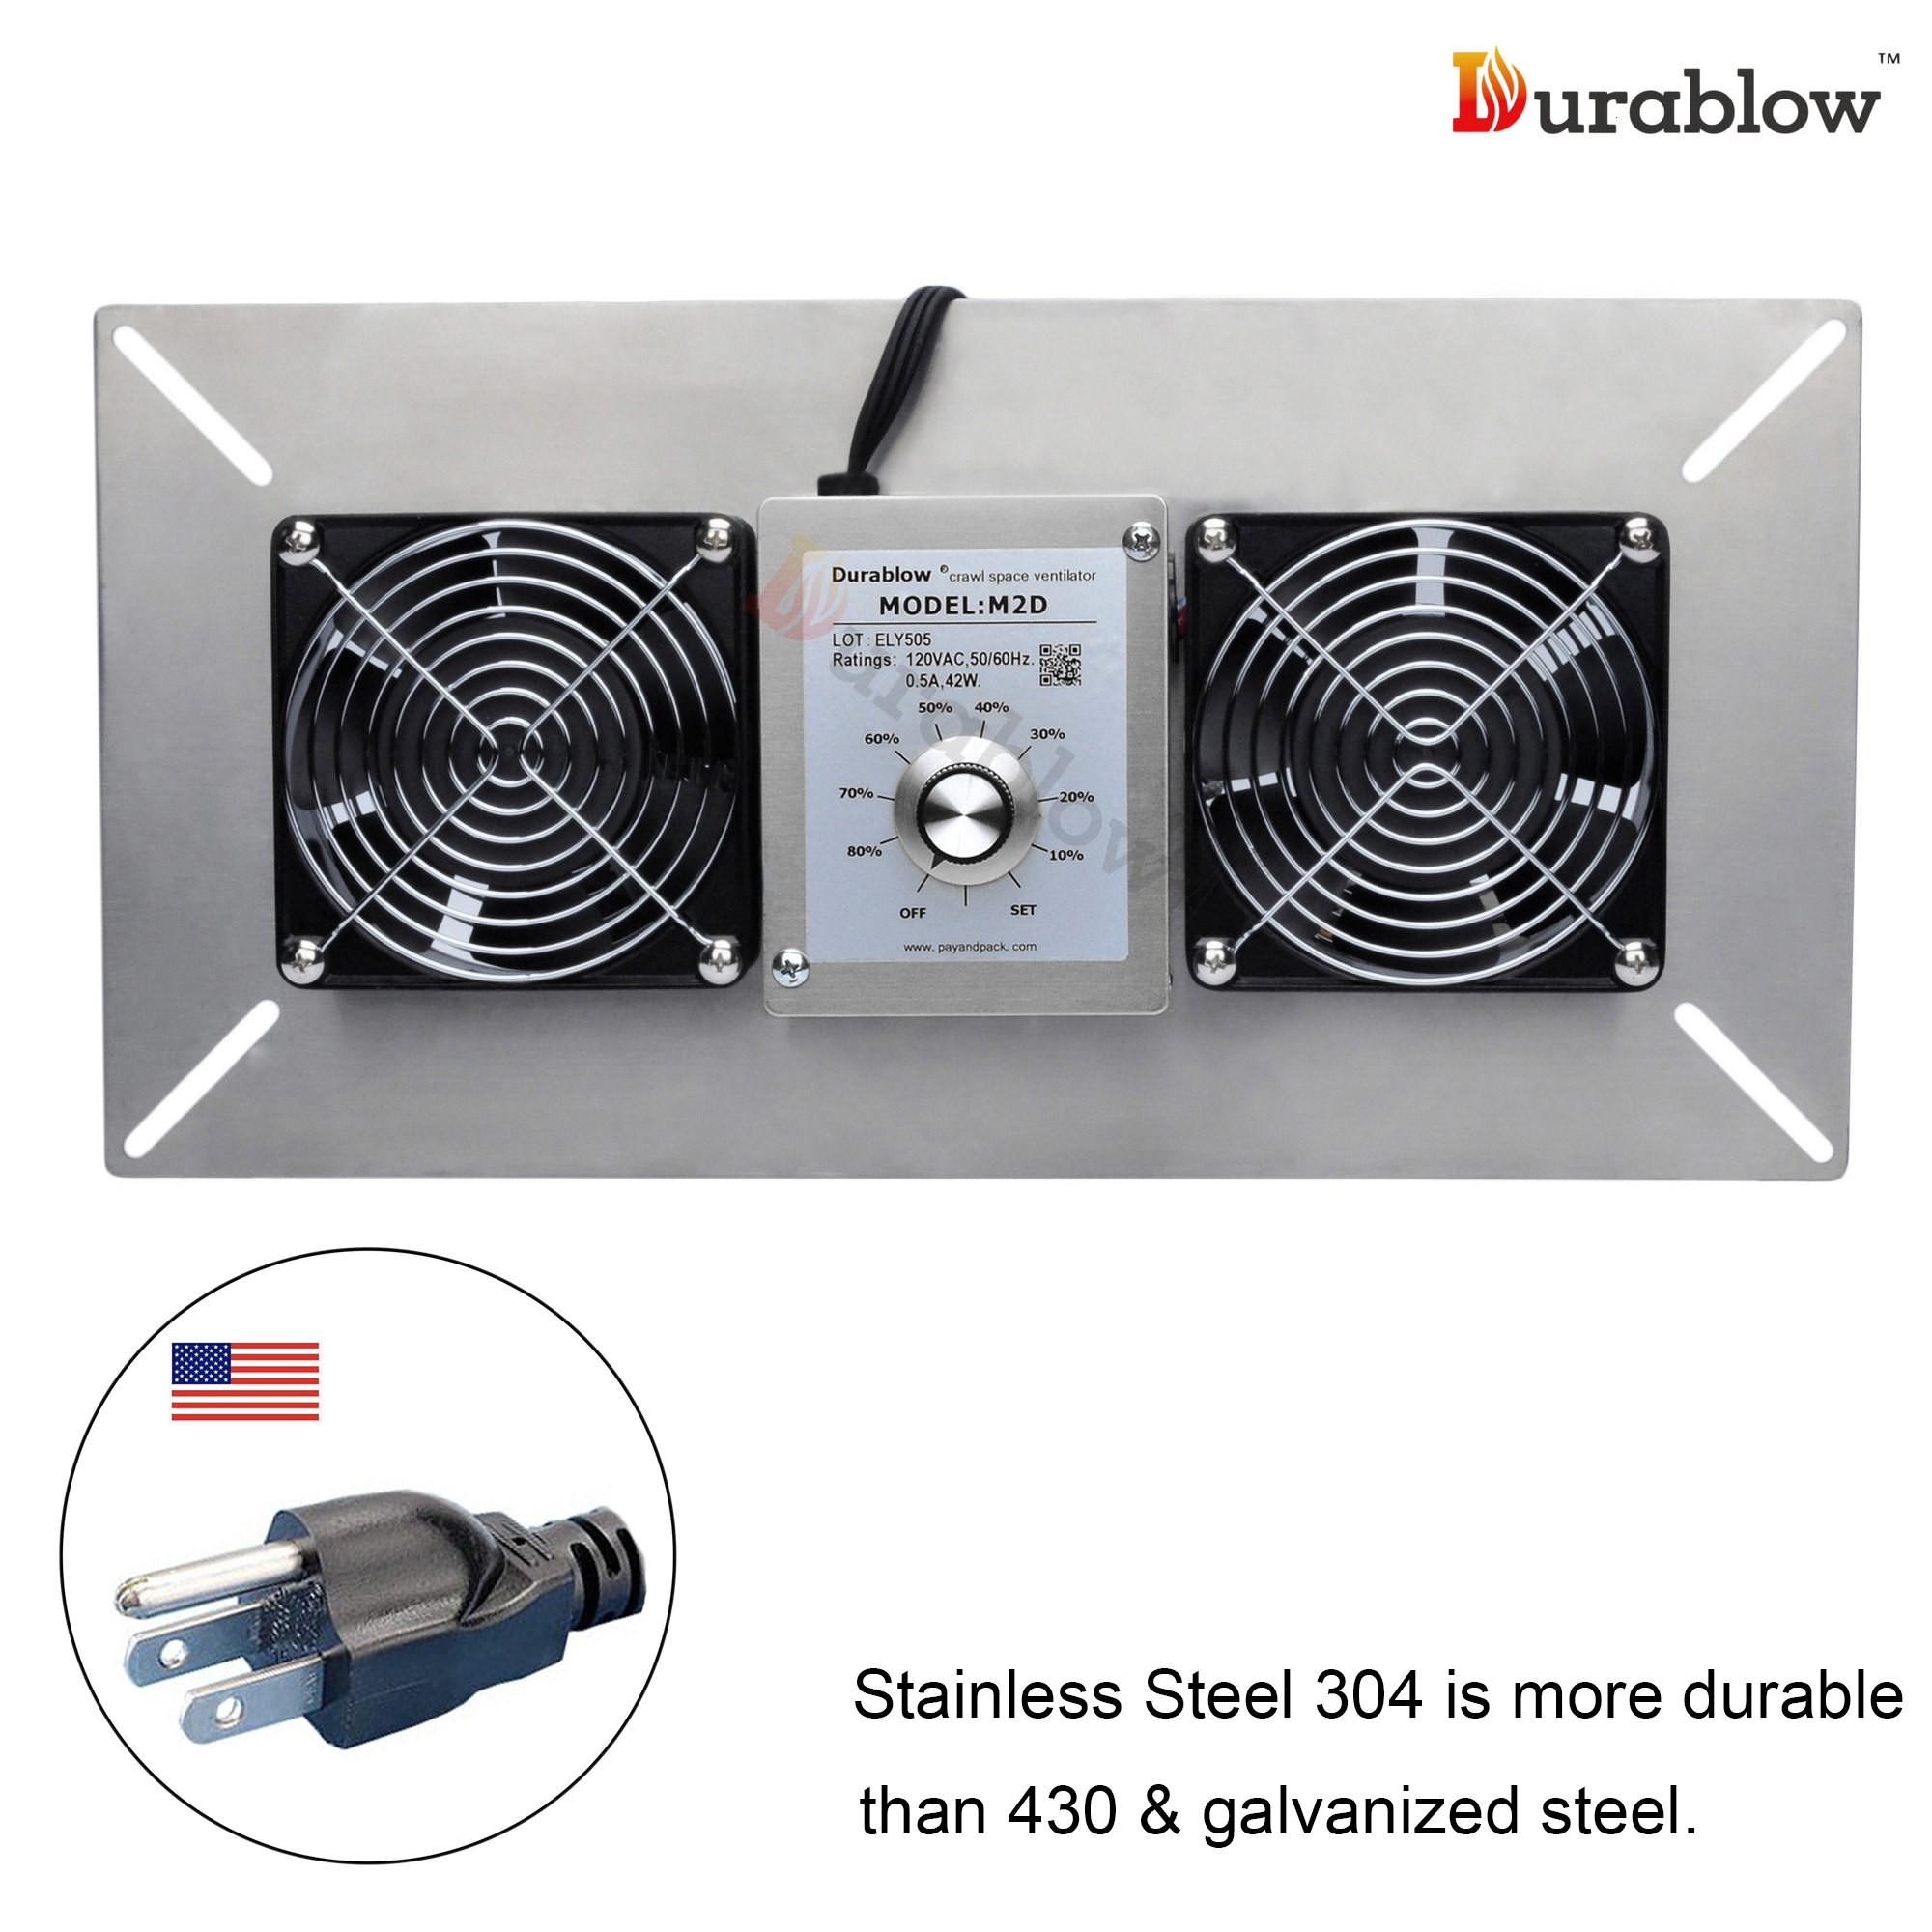 Durablow Stainless Steel Crawl Space Foundation Dual Fans Ventilator + Built-in Dehumidistat (Stainless Steel 304, M2D)